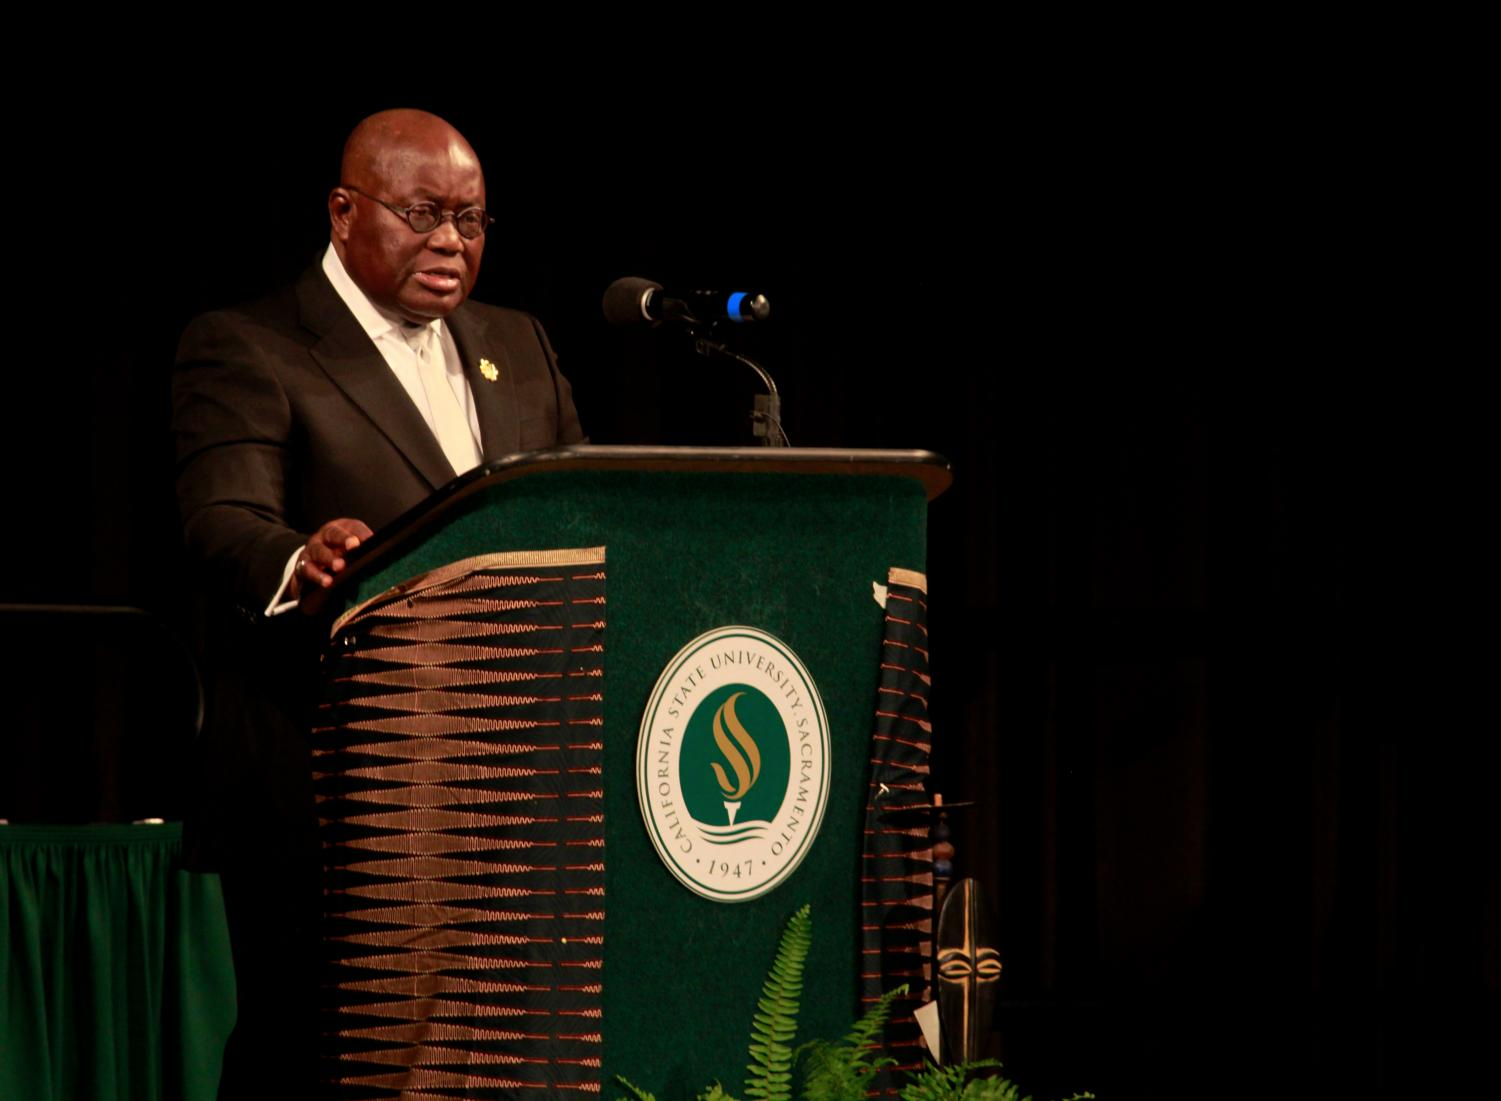 Republic of Ghana president Nana Akufo-Addo delivers his keynote speech following his acceptance of the African Peace Leadership Award in the University Union Ballroom on Saturday, April 28, 2018.